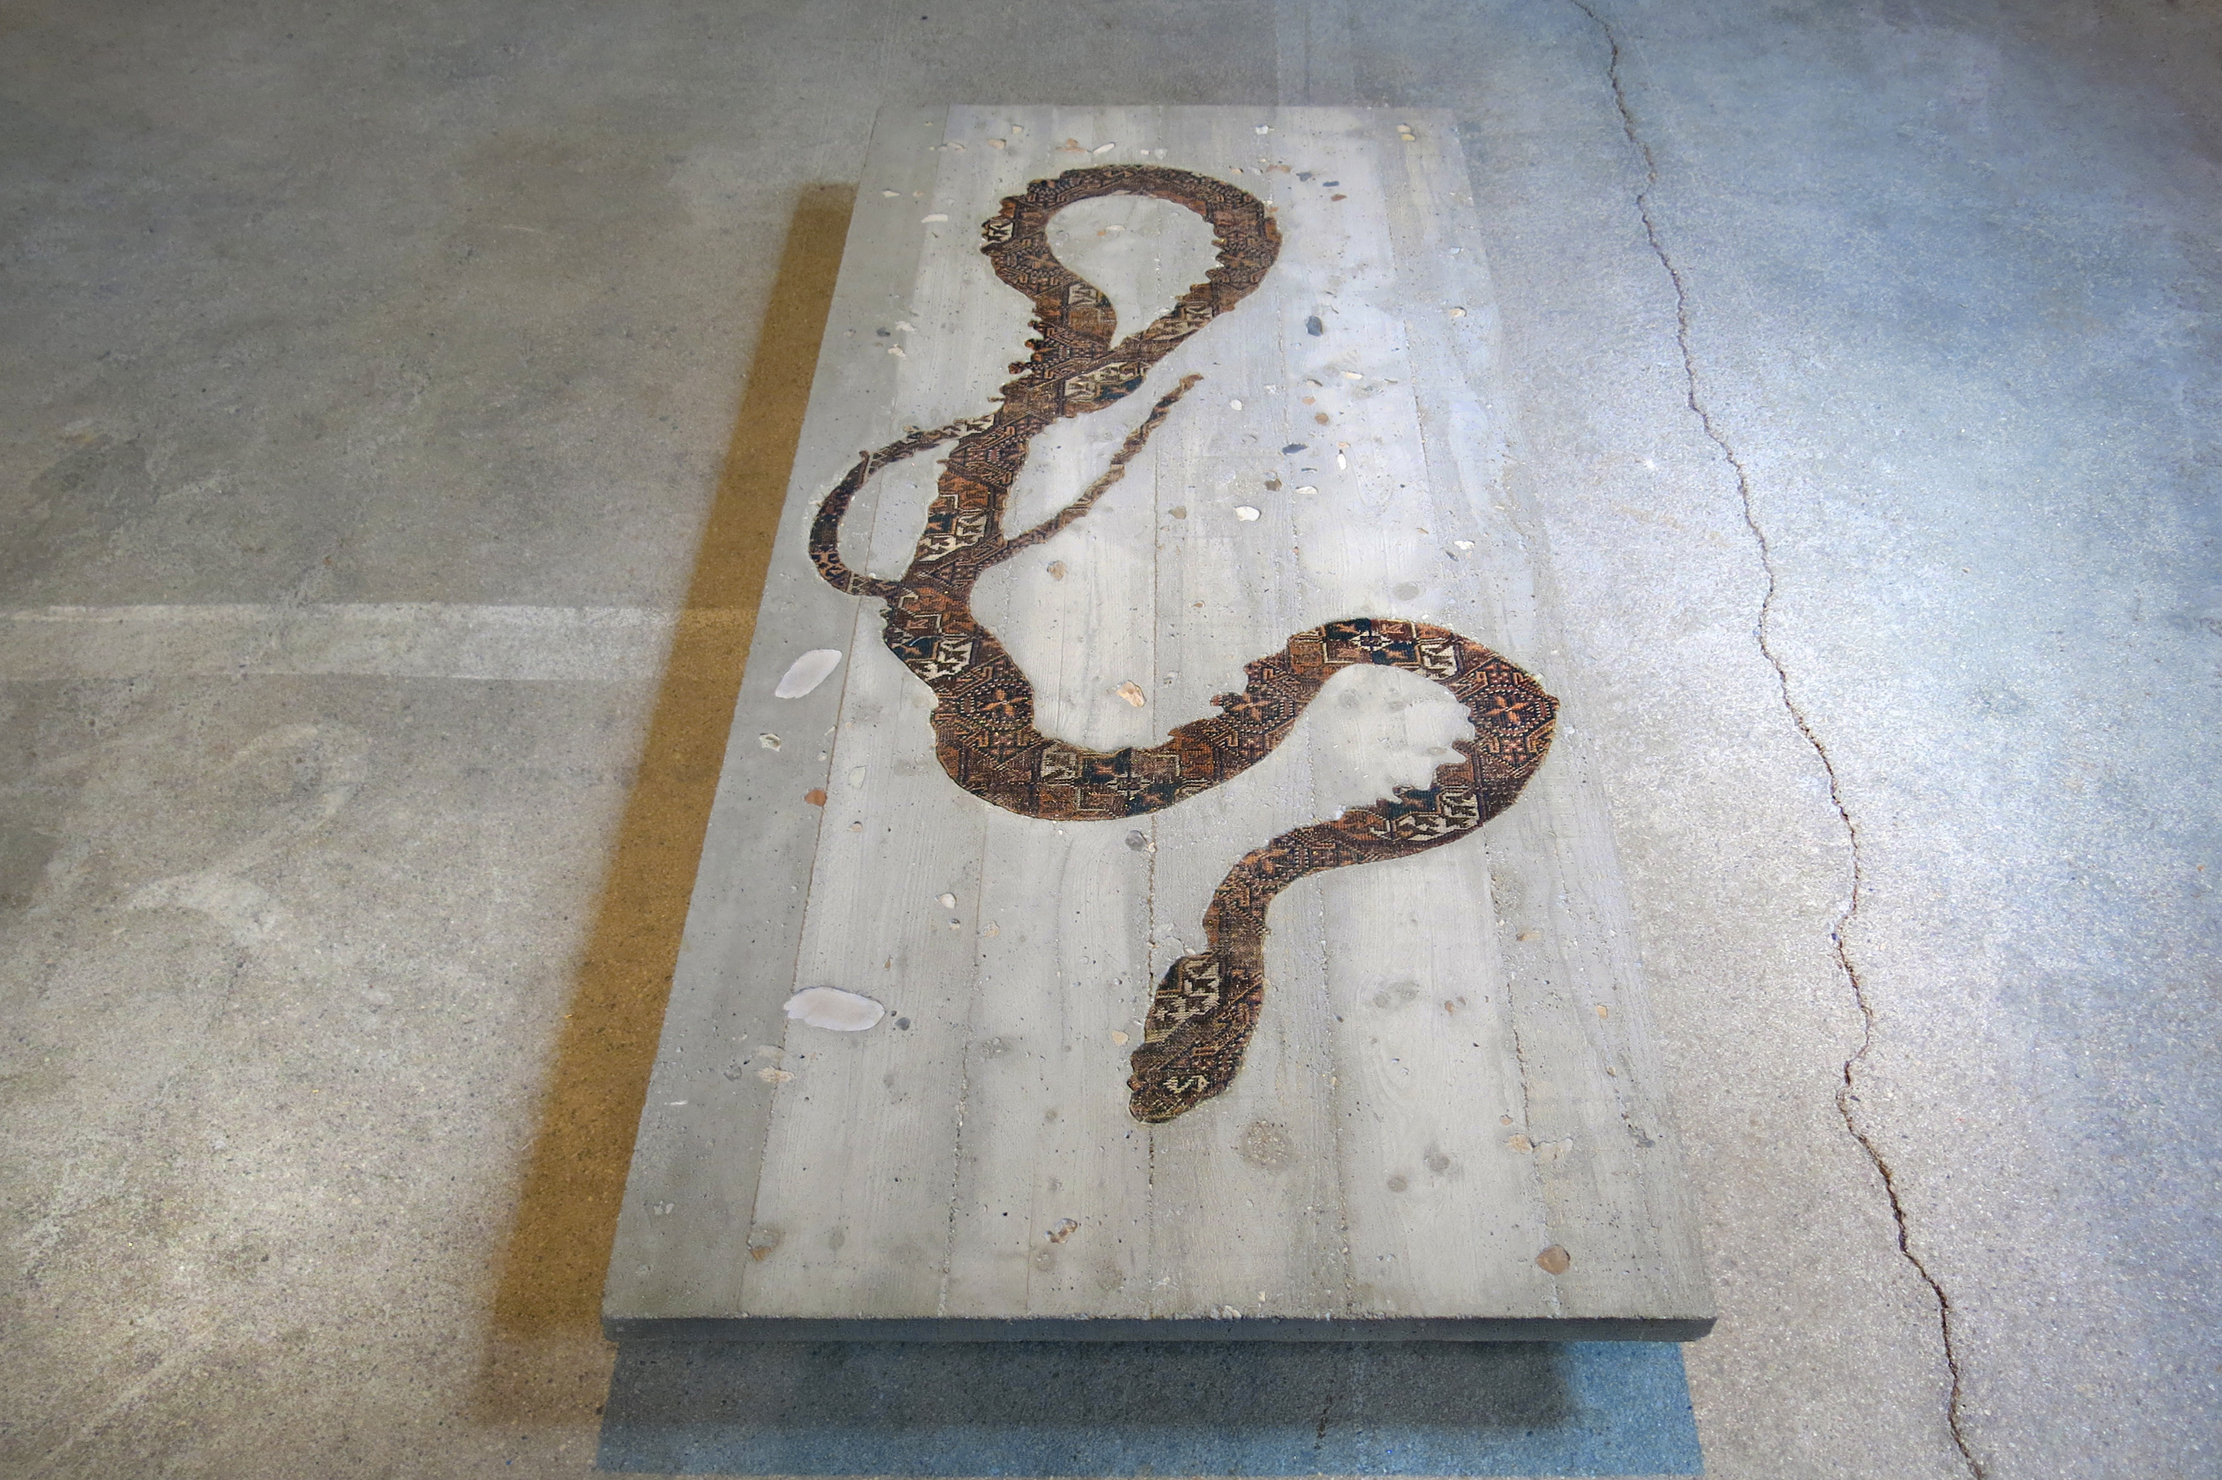 web222-marion-friedmann-gallery-noemi-kiss-serpent-table-rug-inlay-in-concrete-hipphalle-photo-marion-friedmann.jpg